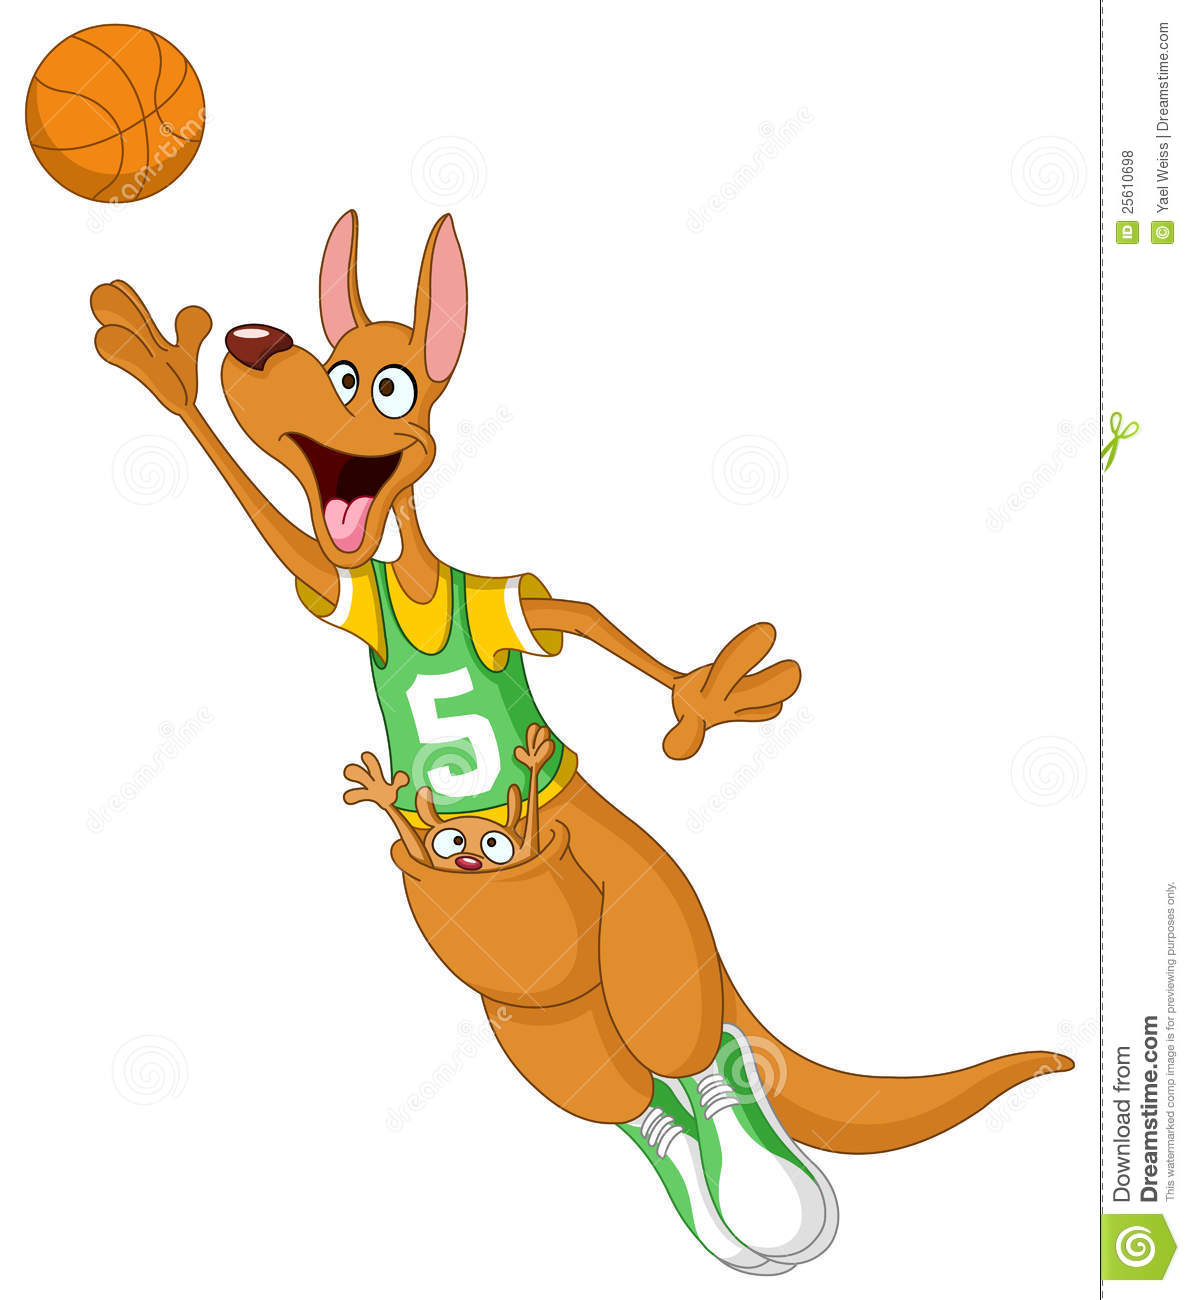 Basketball Kangaroos Cartoon